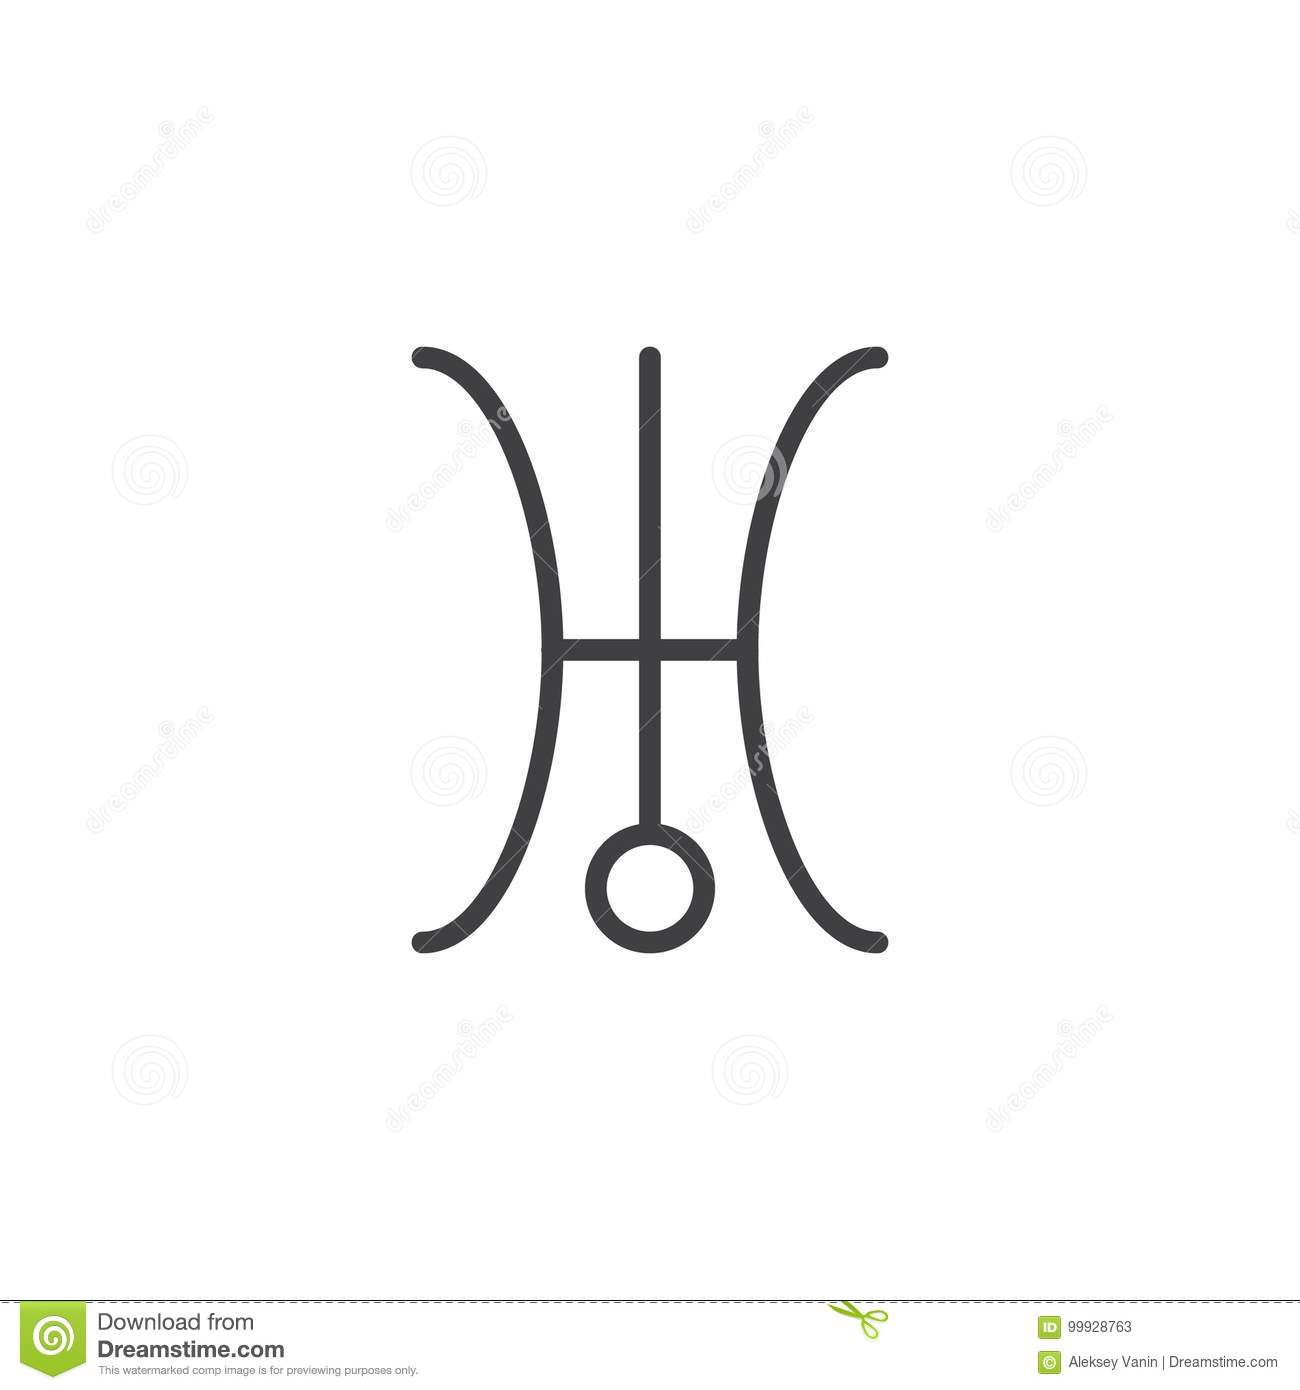 Uranus symbol line icon stock vector illustration of uranus 99928763 uranus symbol line icon biocorpaavc Gallery